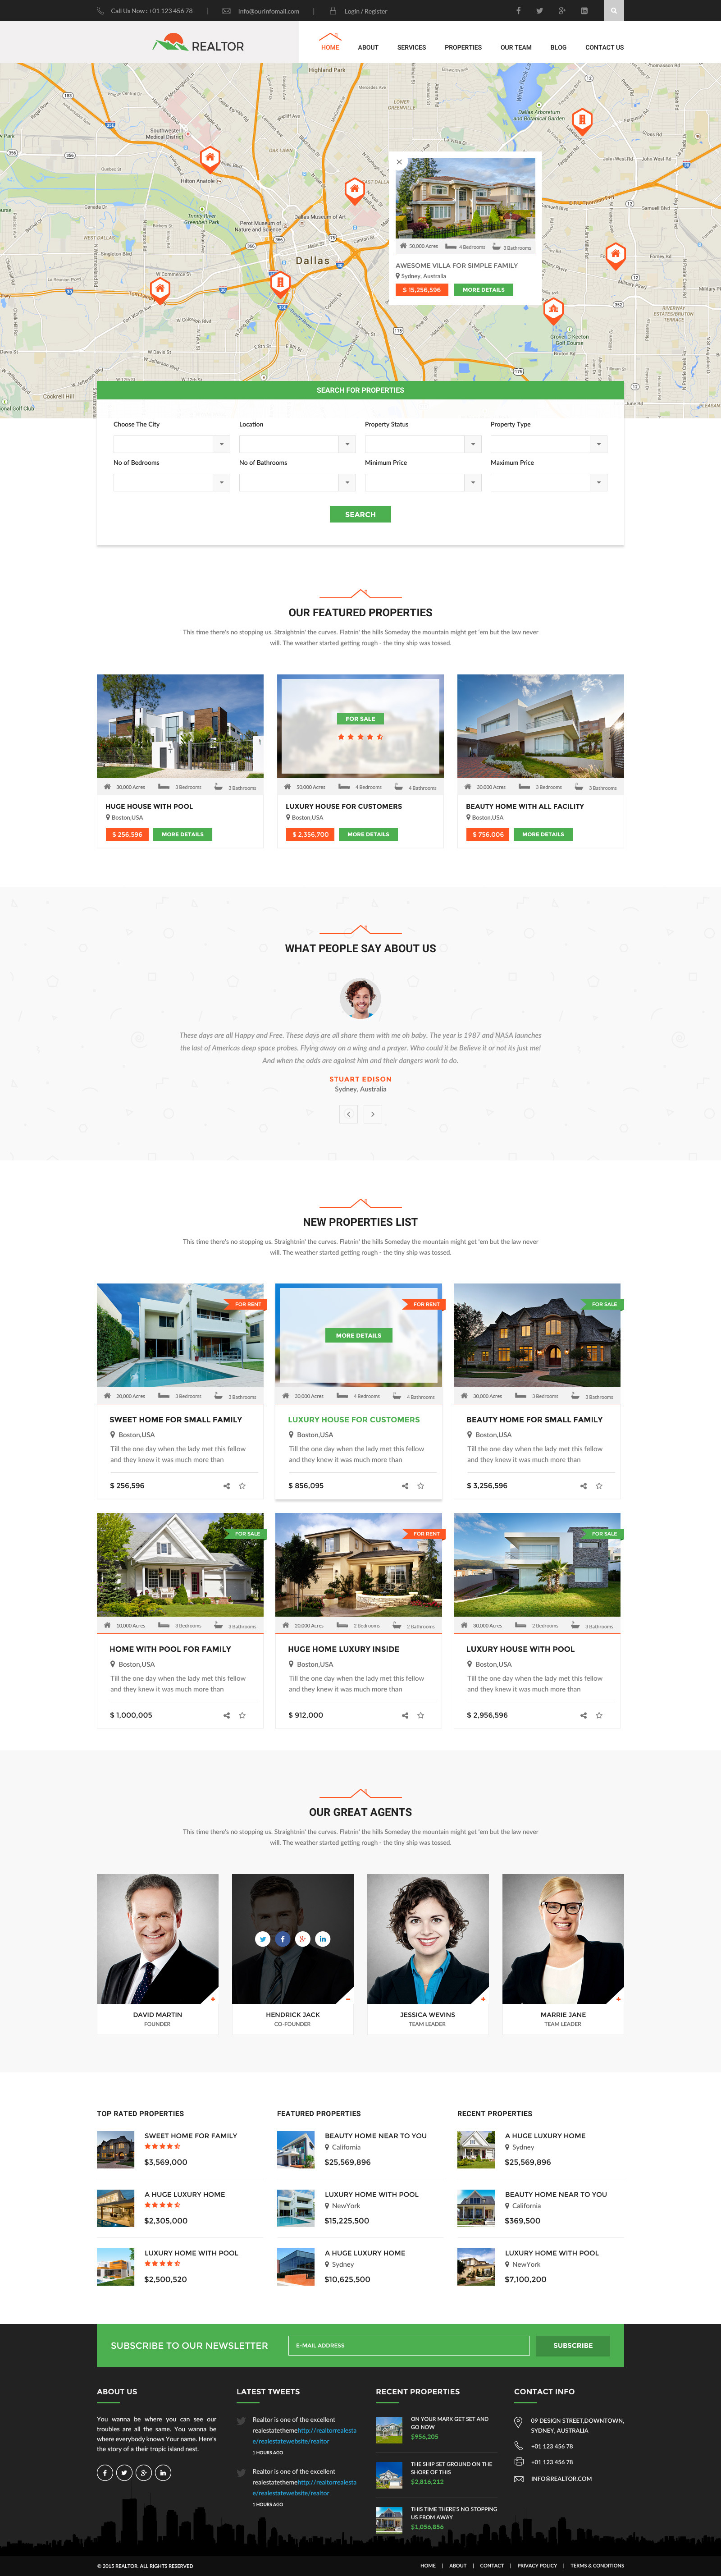 realtor real estate html template by wpmines themeforest screenshots 07 property listing jpg screenshots 08 blog jpg screenshots 09 property details jpg screenshots 10 single post jpg